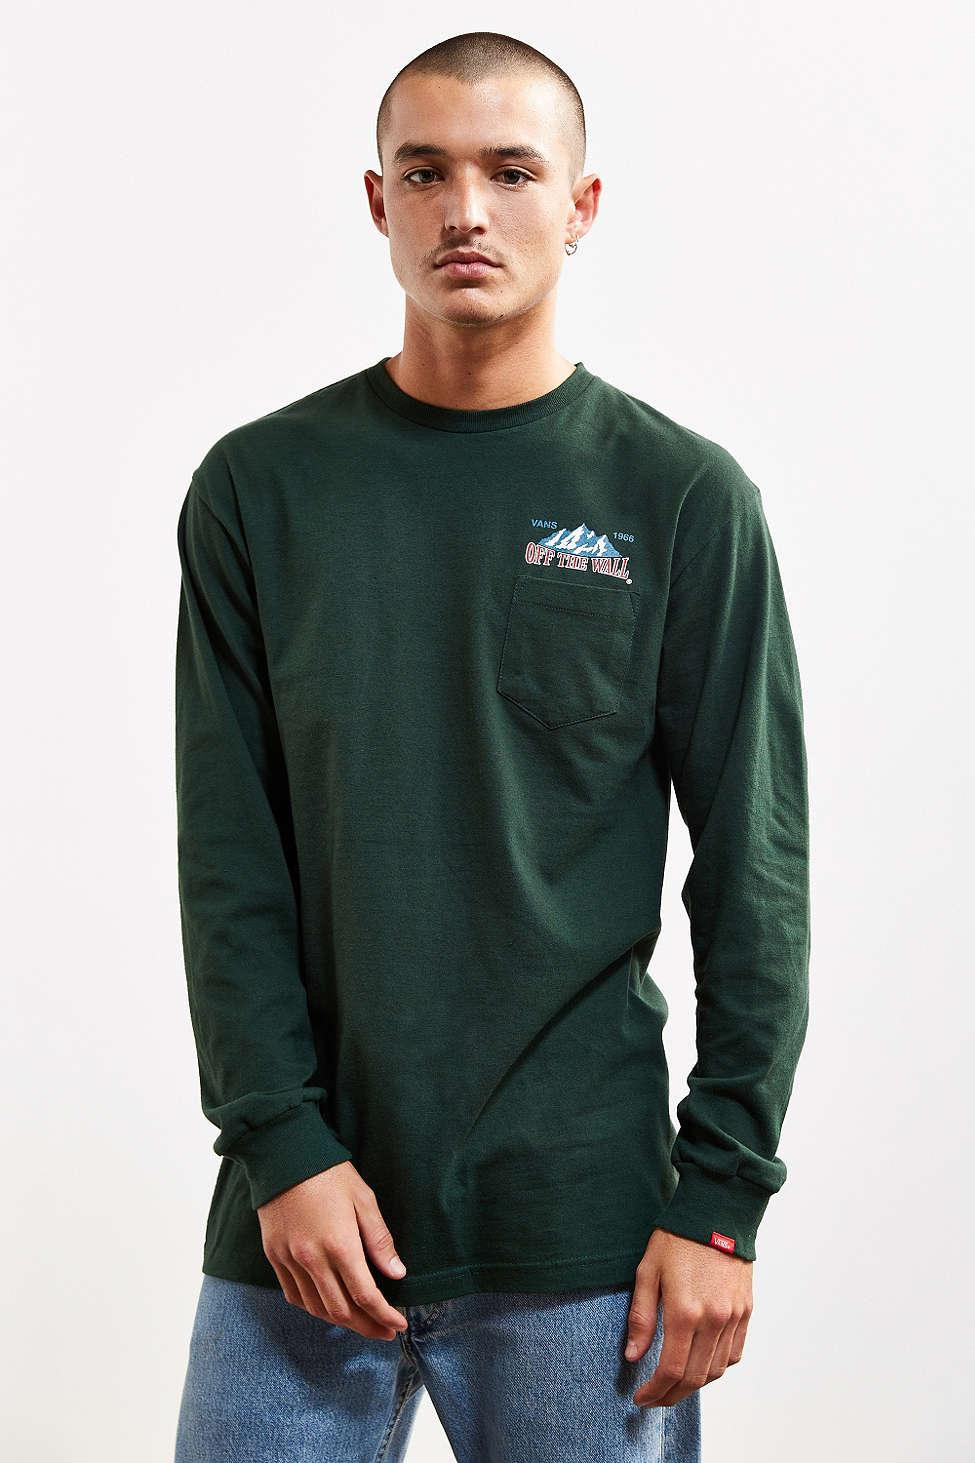 c559bf31a129 Lyst - Vans 66 Summit Long Sleeve Tee in Green for Men